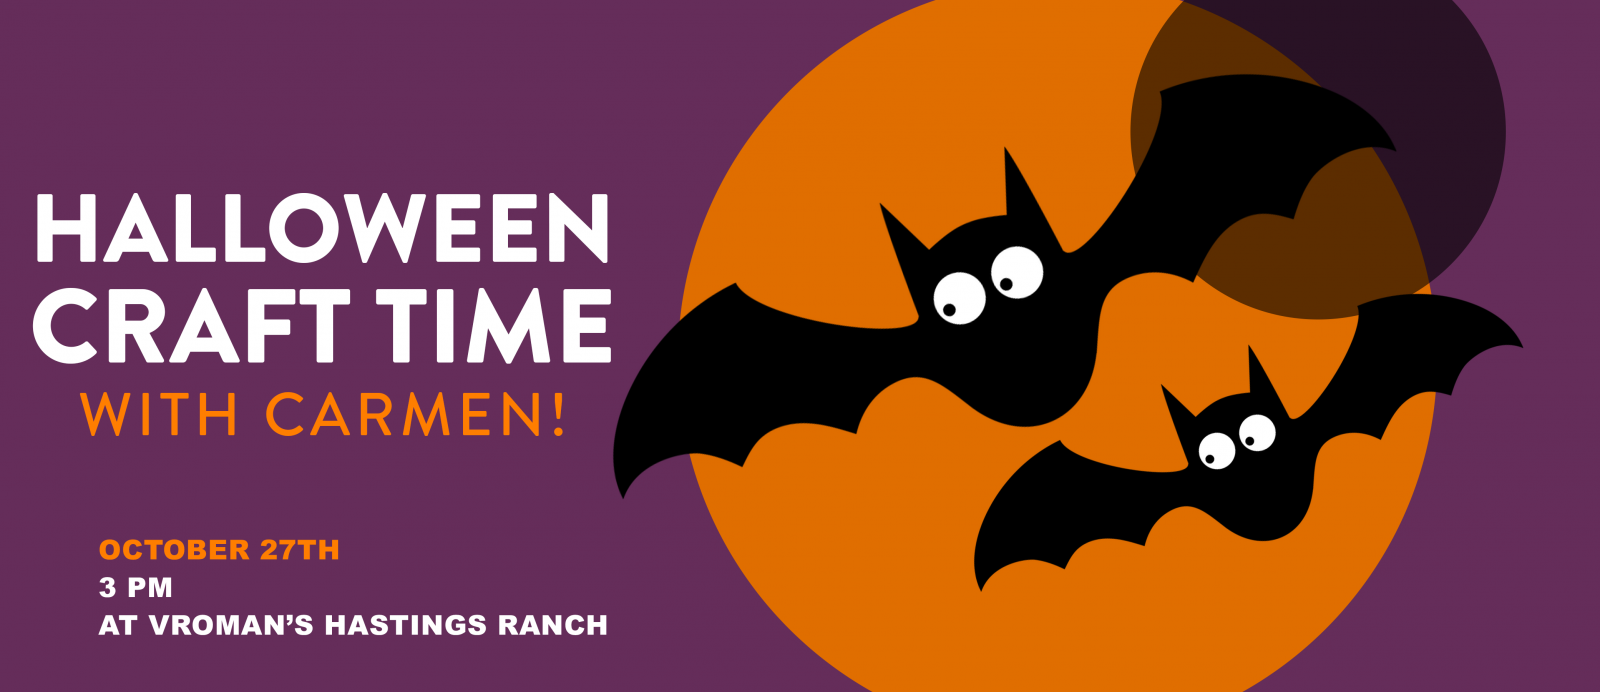 Halloween Craft Time with Carmen! Sunday October 27th at 3pm